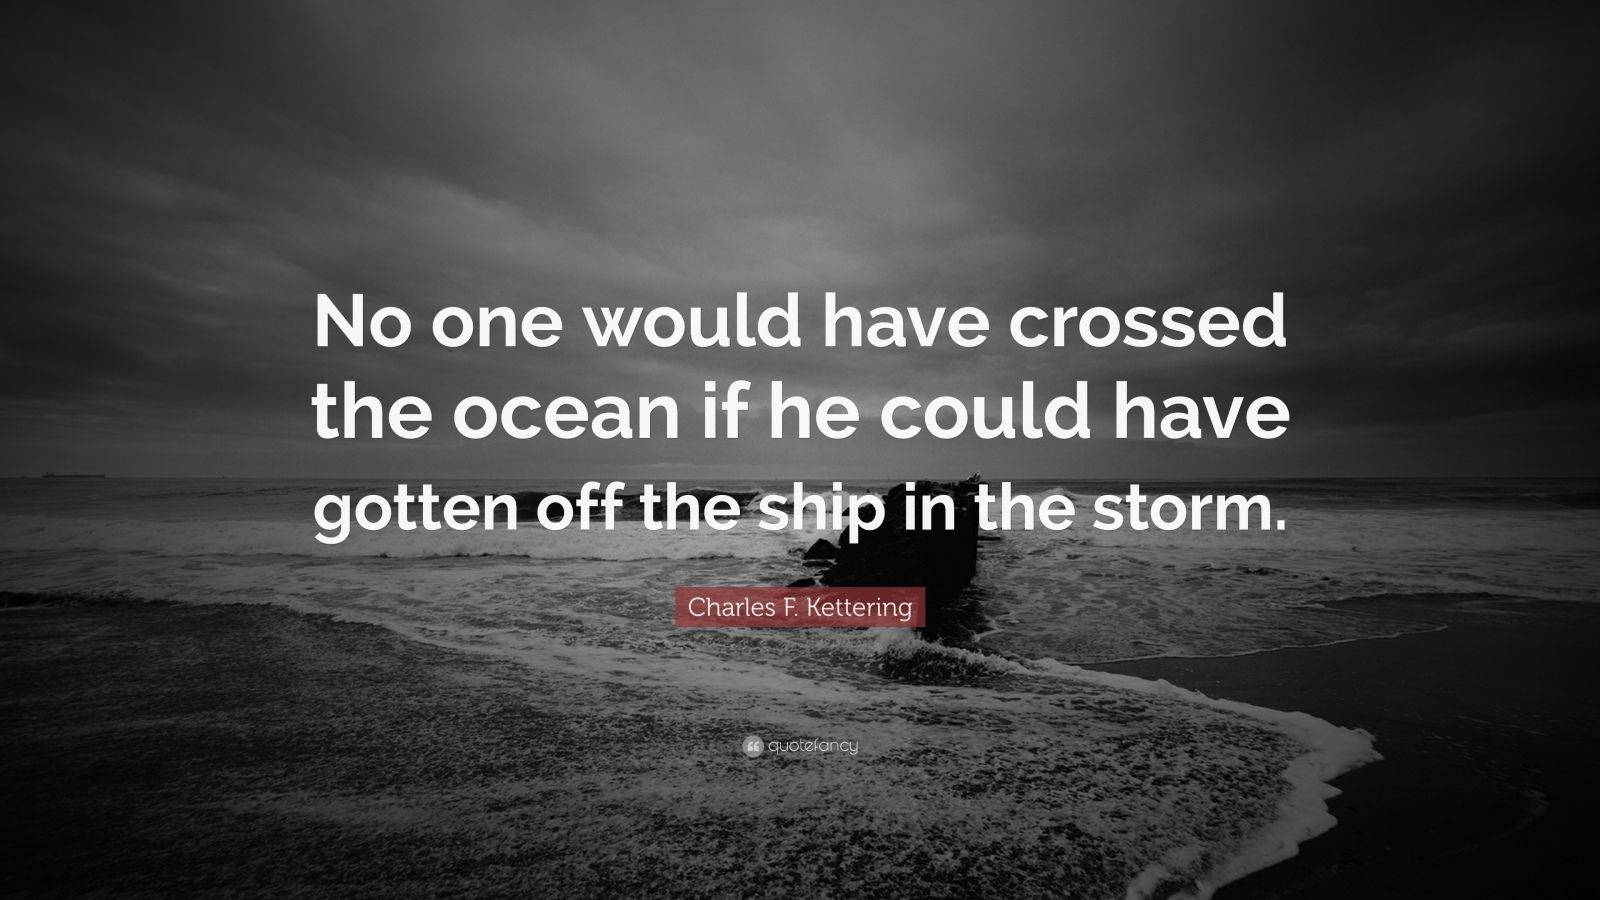 """Charles F. Kettering Quote: """"No one would have crossed the ocean if he could have gotten off the ship in the storm."""""""